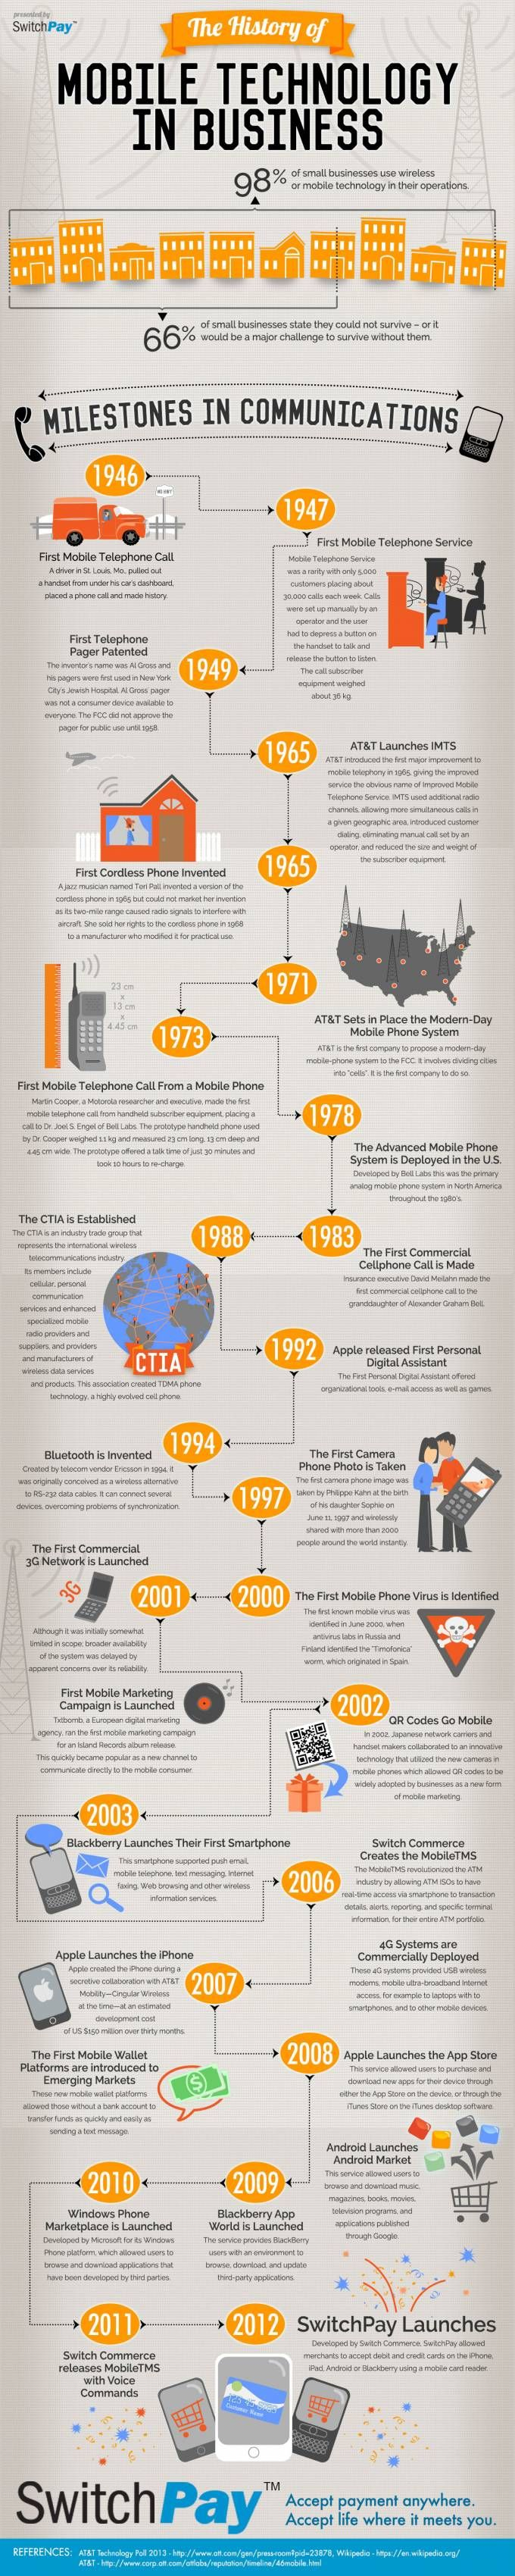 History of Mobile Technology | SwithPay